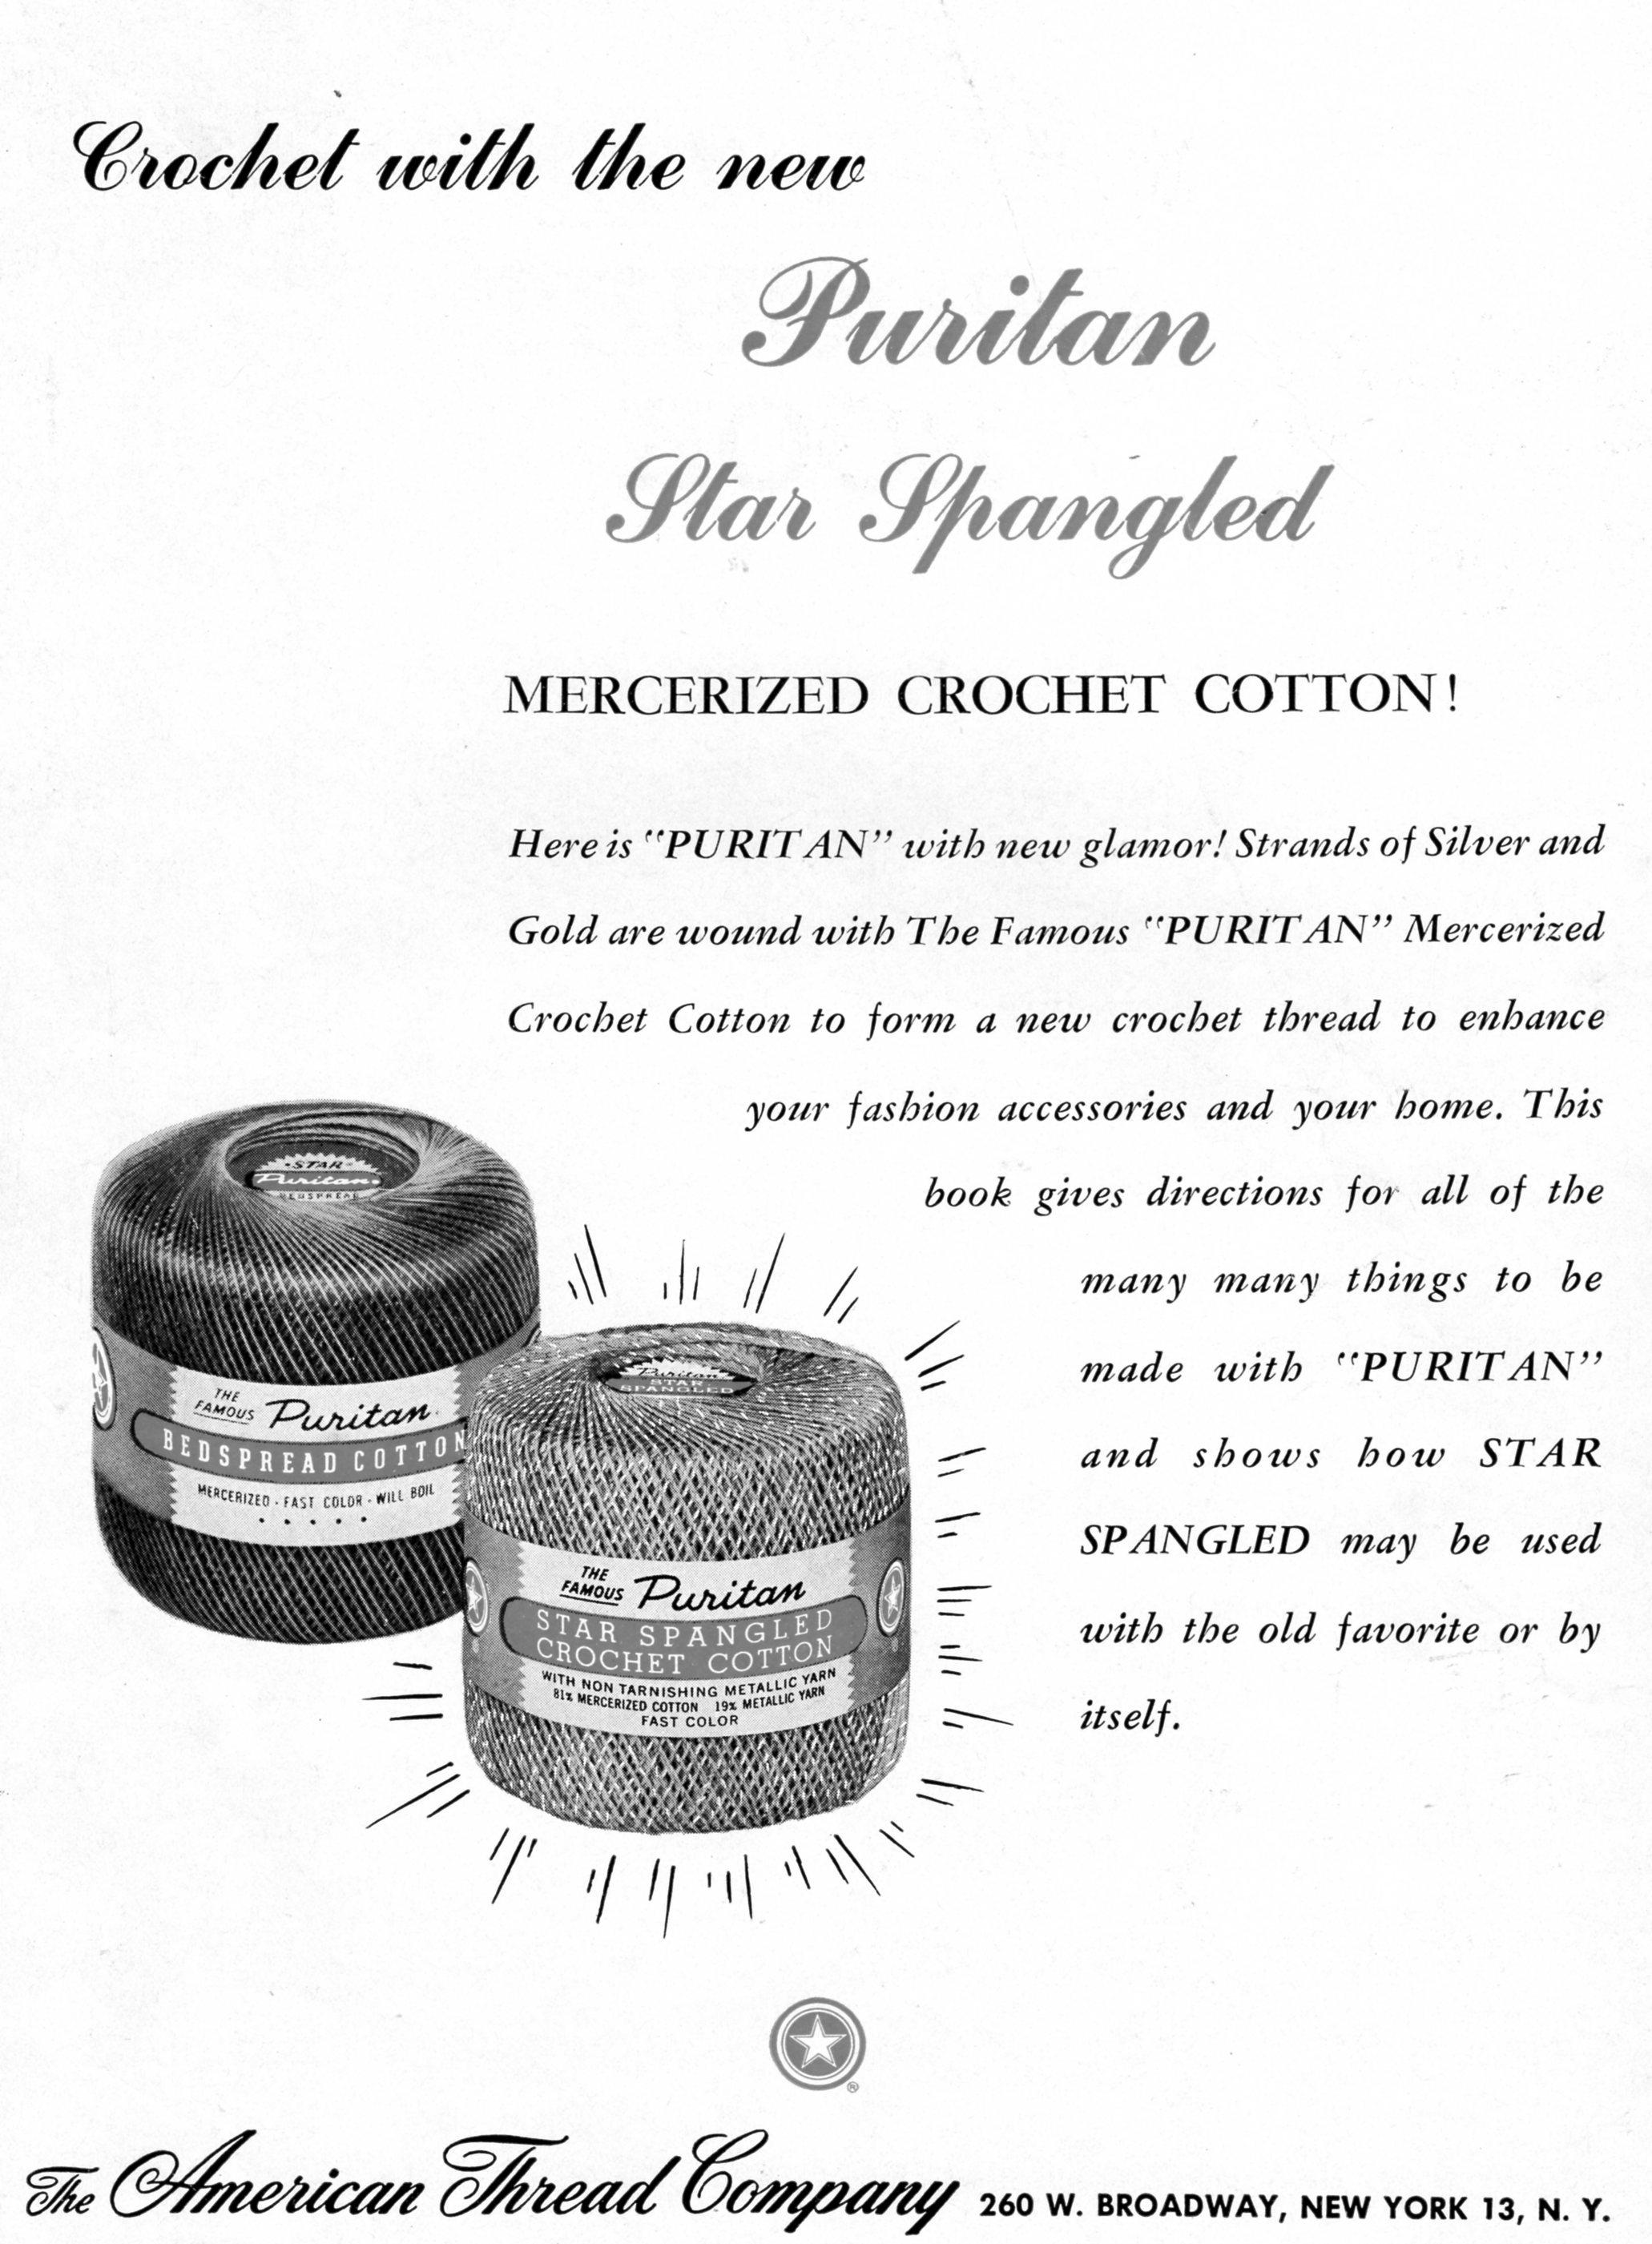 How To Read Vintage Crochet Patterns And Discontinued